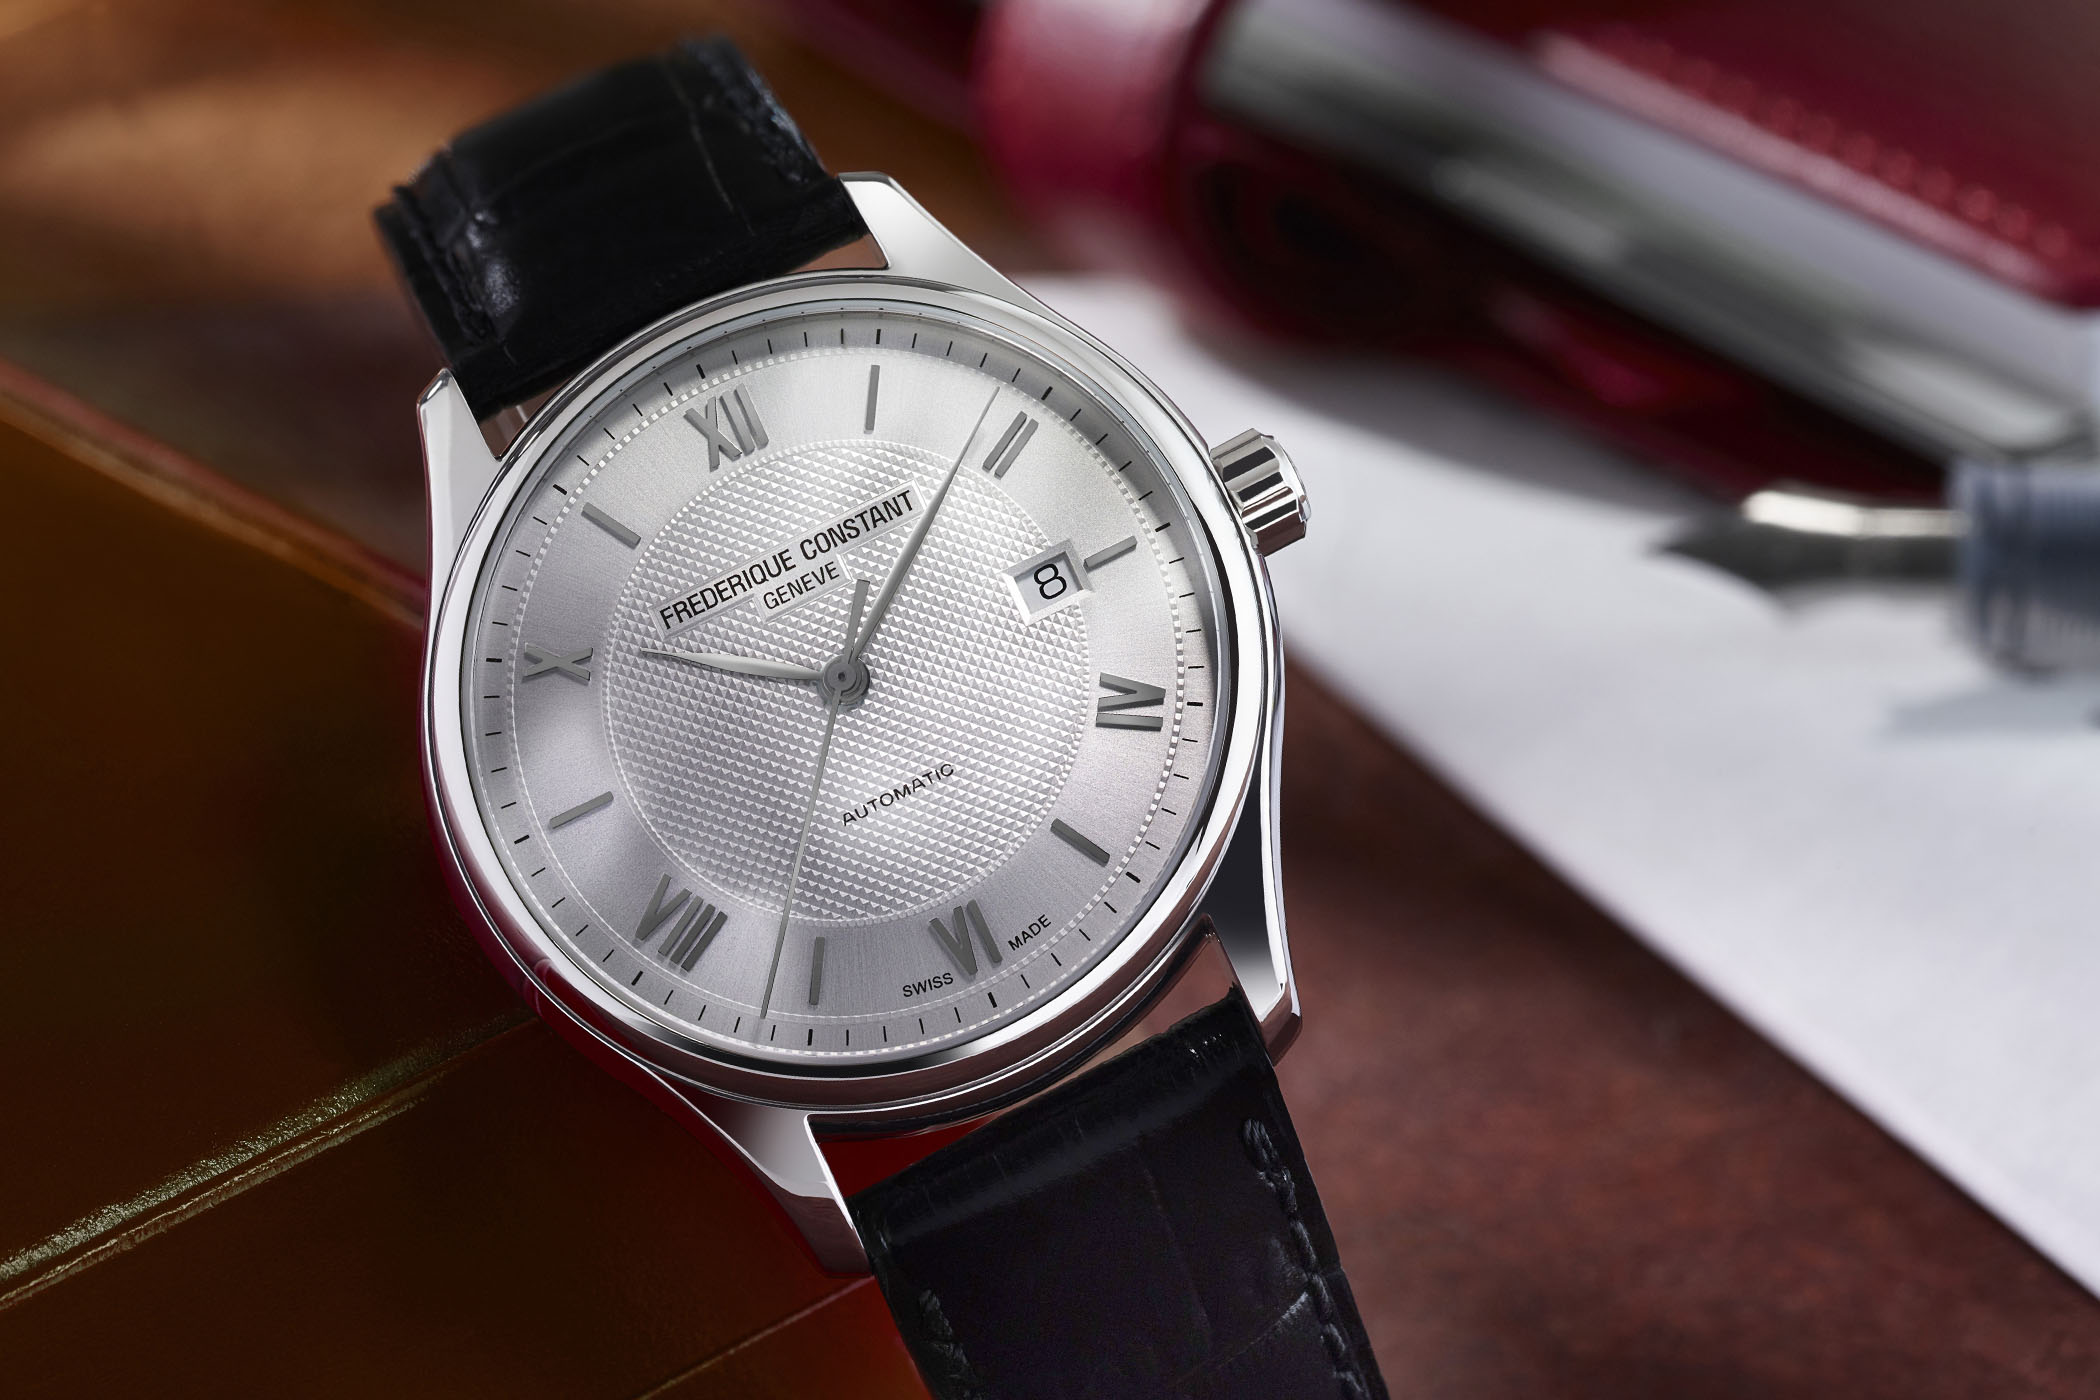 popular family roman tissot locle which simplicity such and signature when le display numerals watch models collided as watchopenia traditional exquisite with img the details watches elegance a automatic